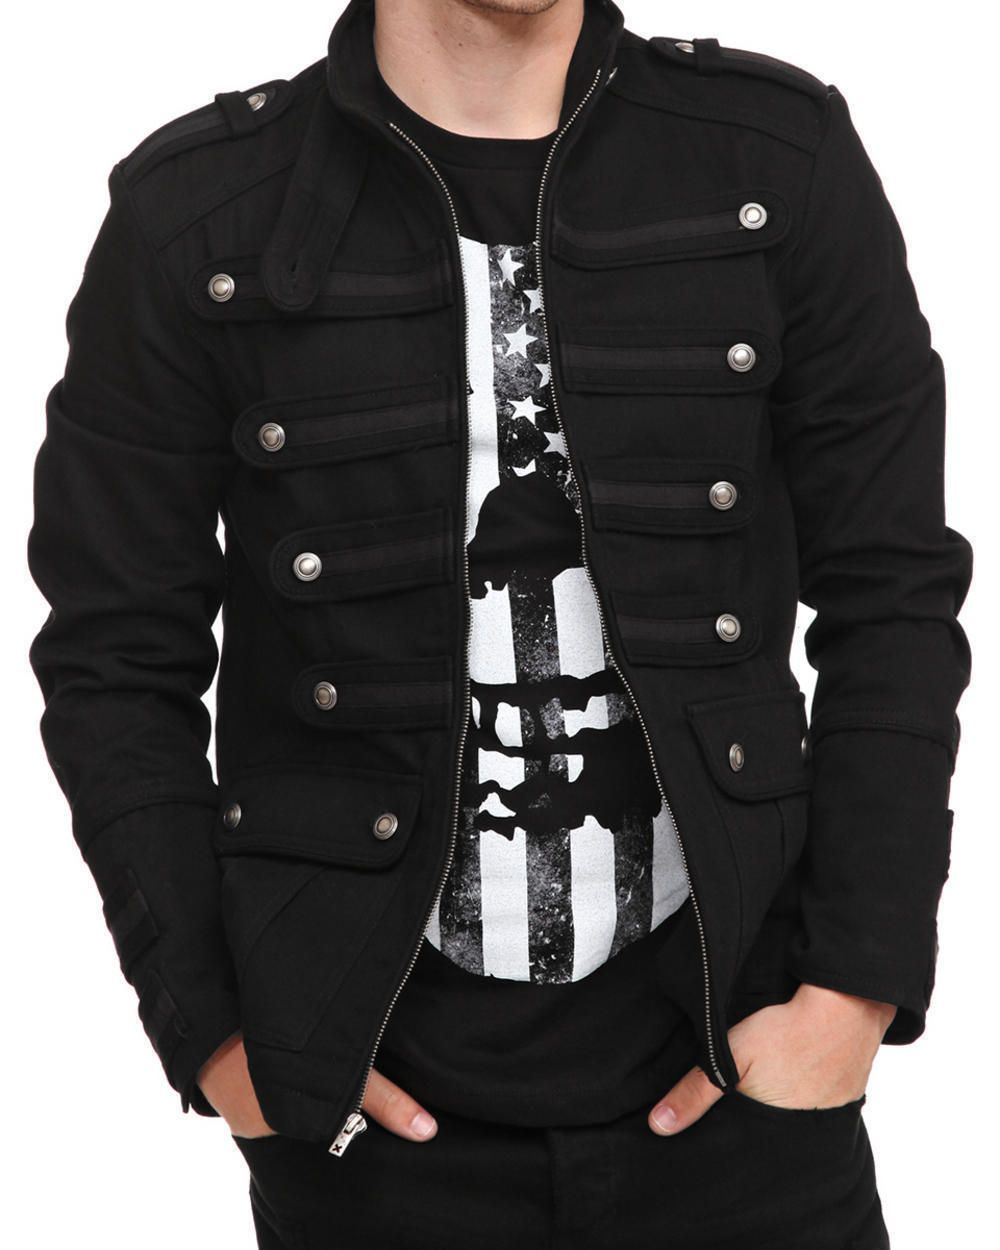 cf348531920 Men's Unique Gothic Steampunk Black Parade Military Marching Band Drummer  Jacket Goth Steampunk Vintage Pea Coat Gothic Military Jacket